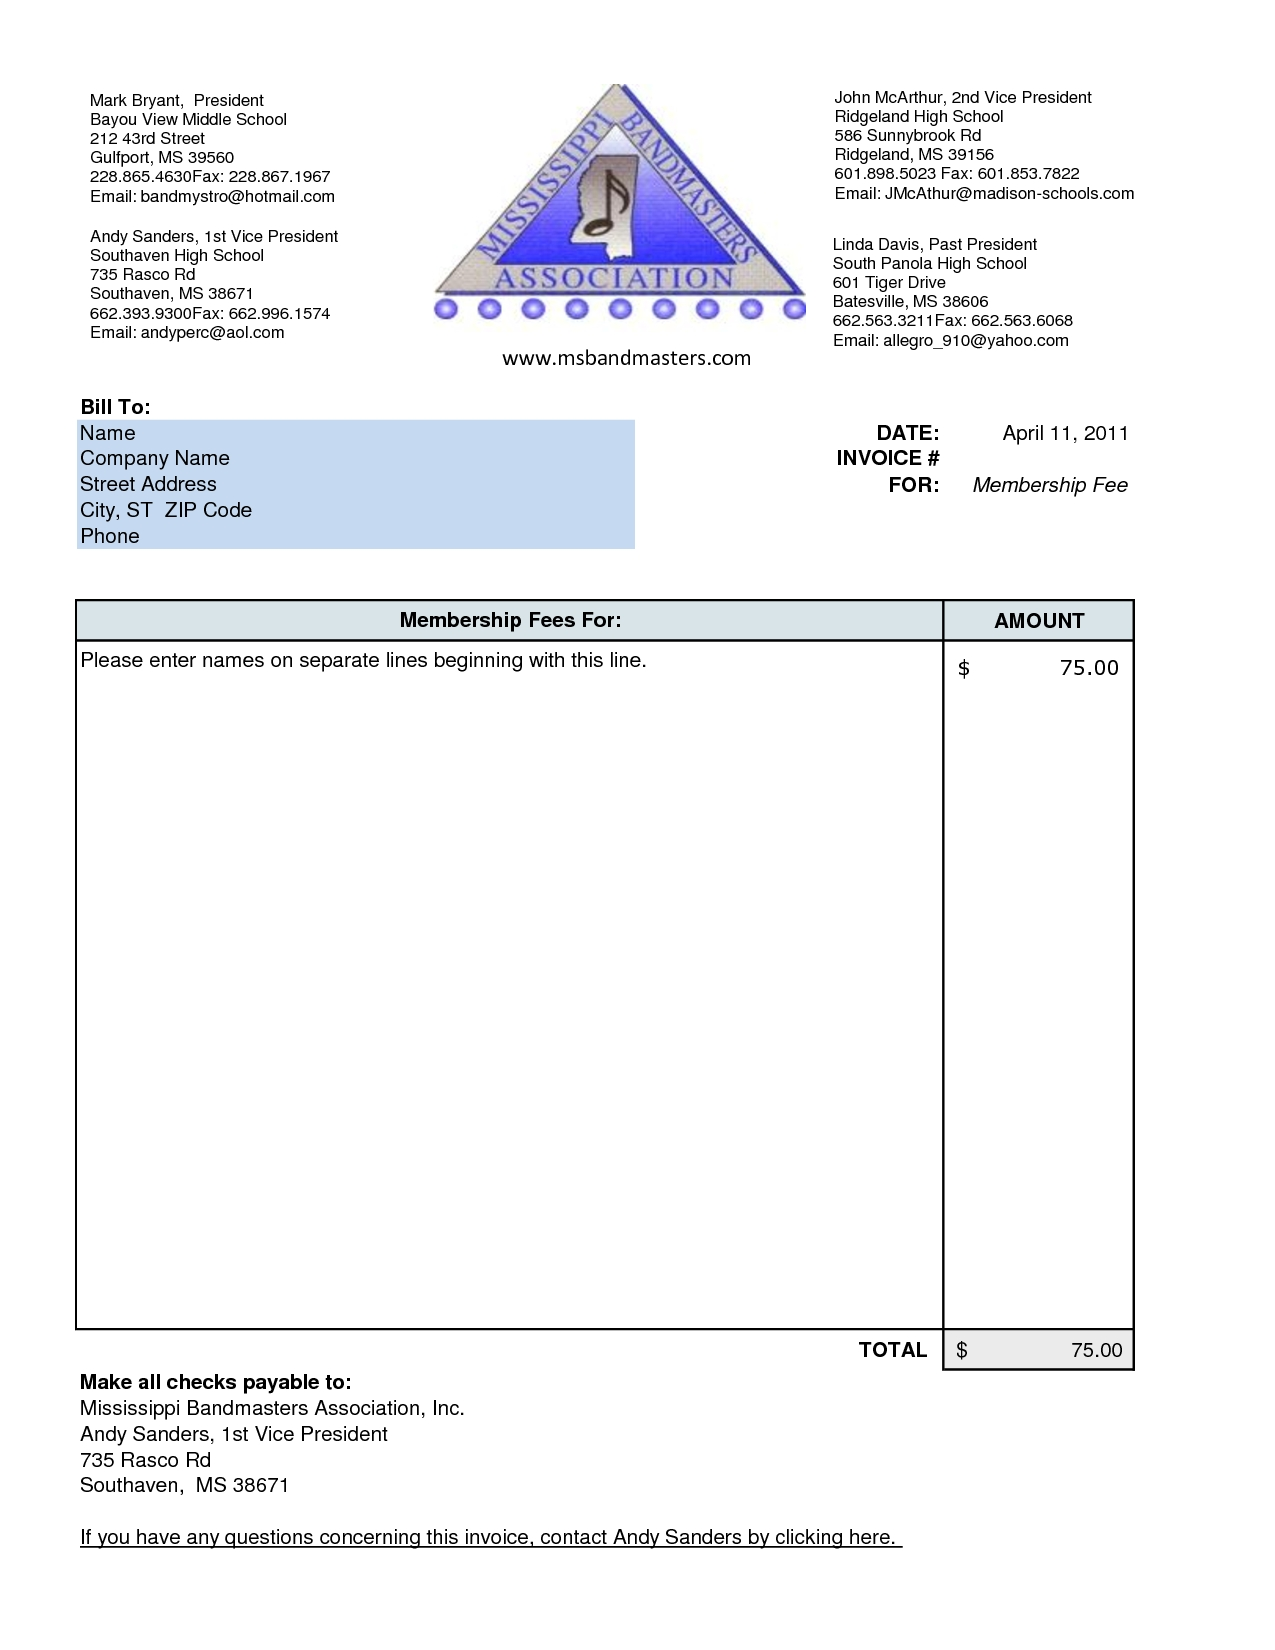 Very Simple Invoice Template – School Invoice Template